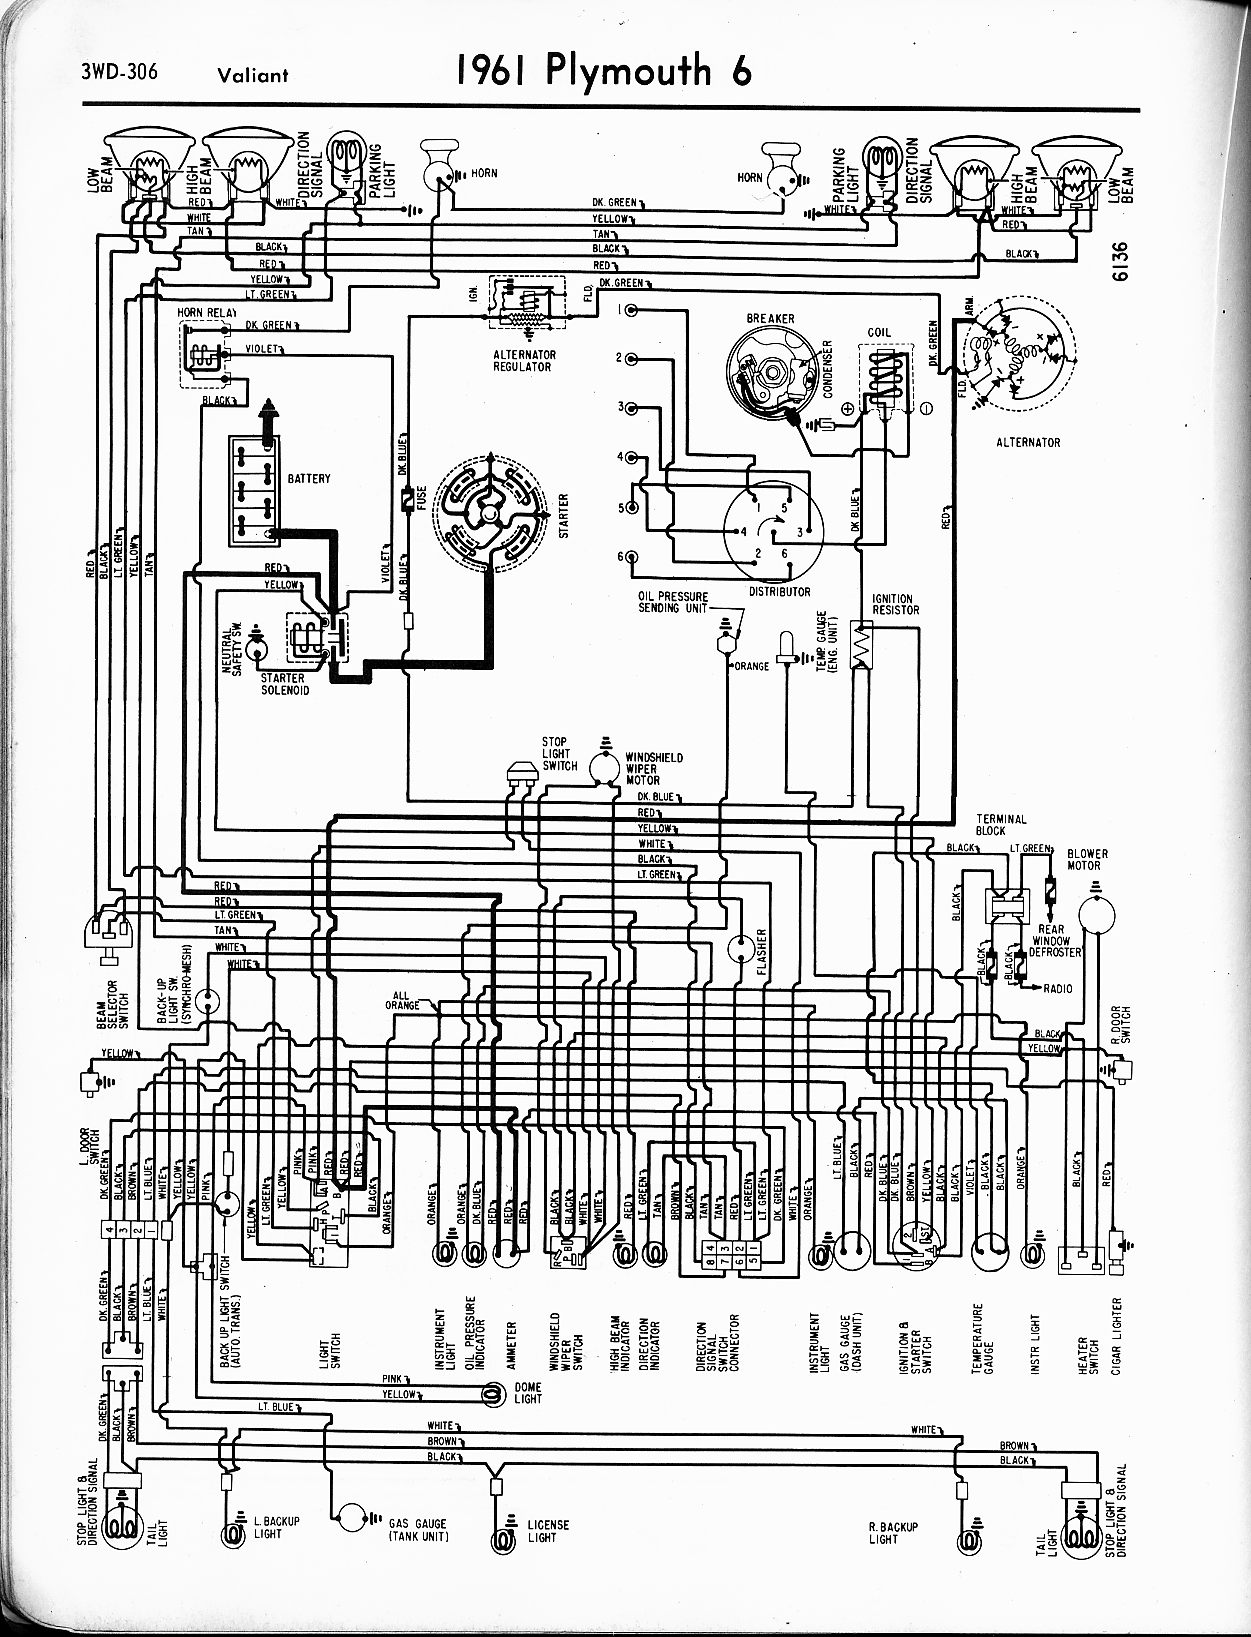 Wiring Diagrams For 1966 Plymouth About Diagram 1968 Chrysler 300 Satellite Auto Electrical Corvair